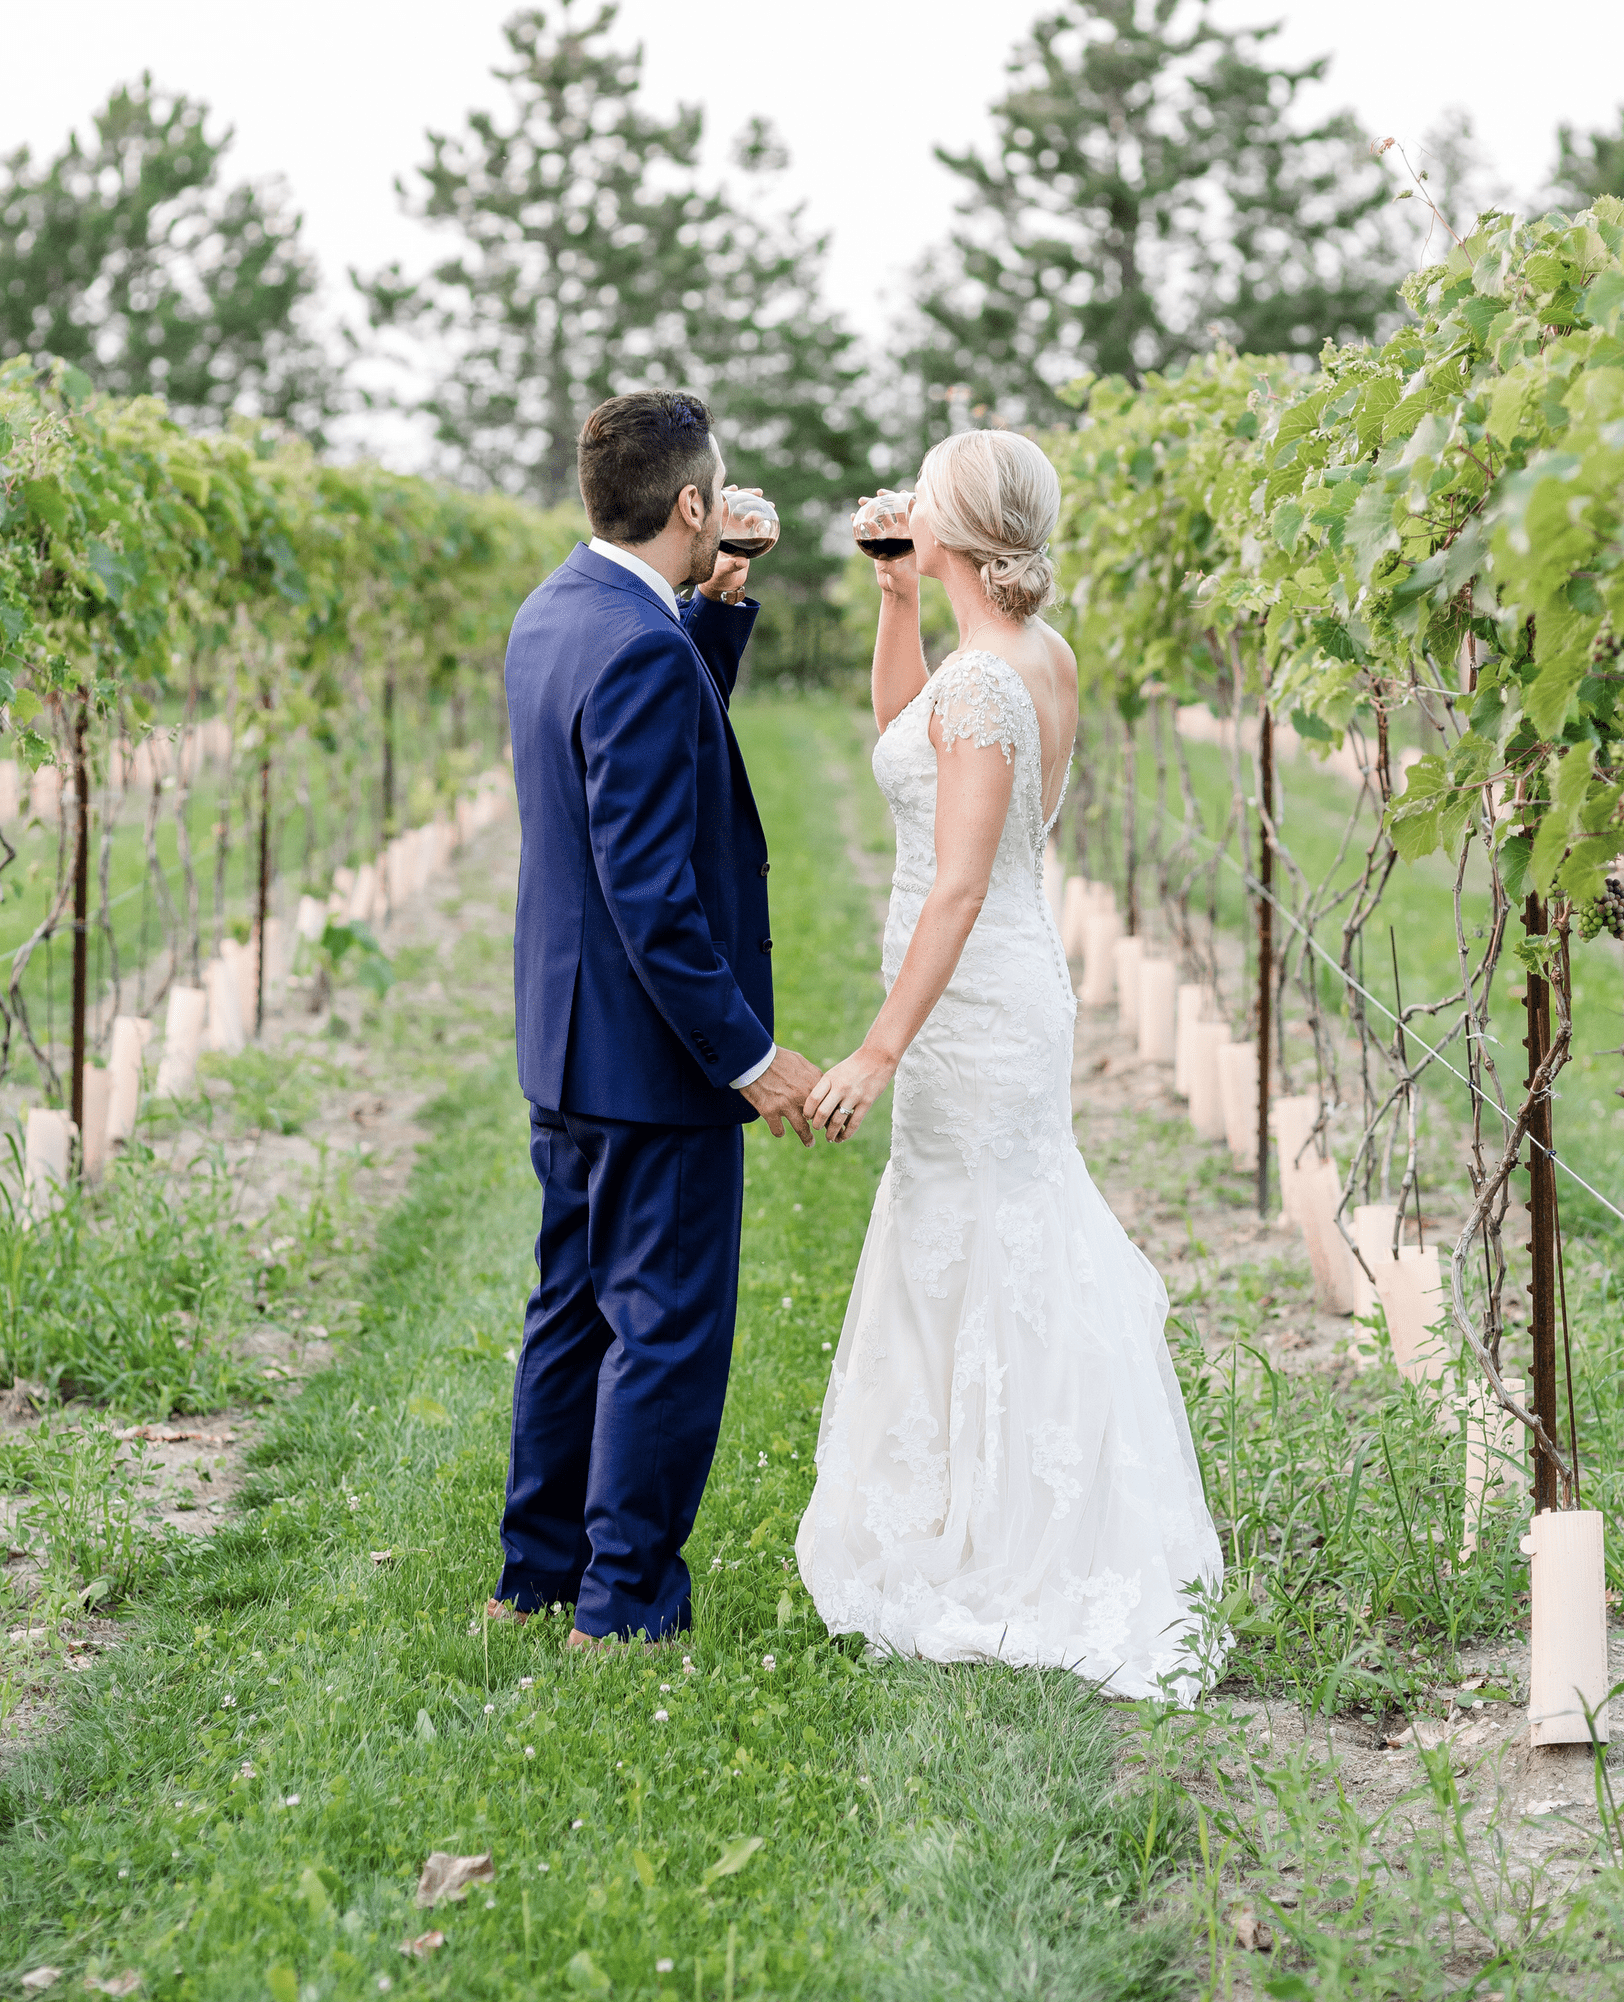 Venue: Hessenland Shatz Winery | Photo: Holly Dalton Photography